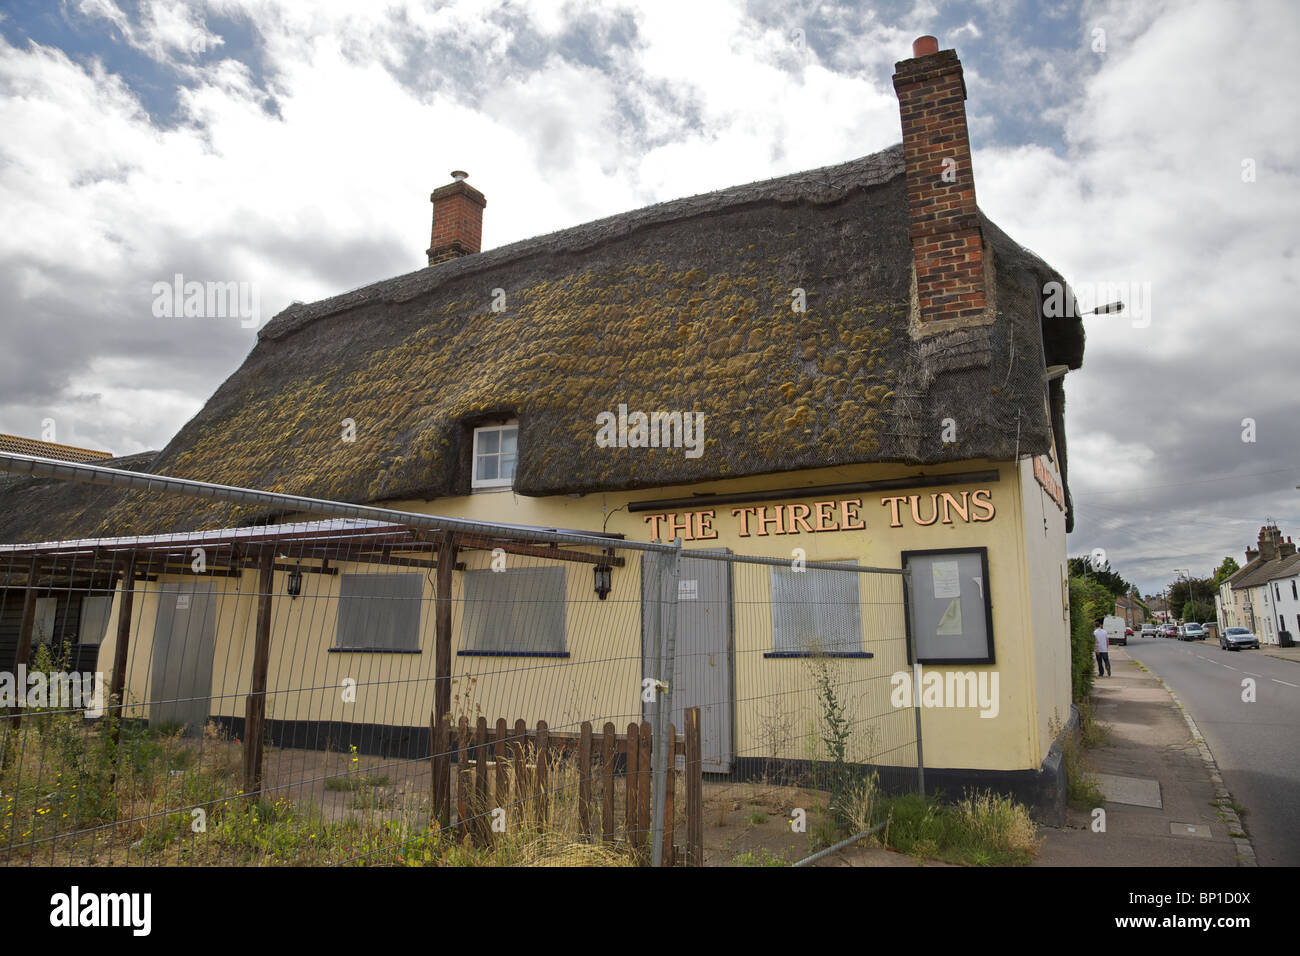 A closed down pub the Three Tuns in Apsley, England - Stock Image